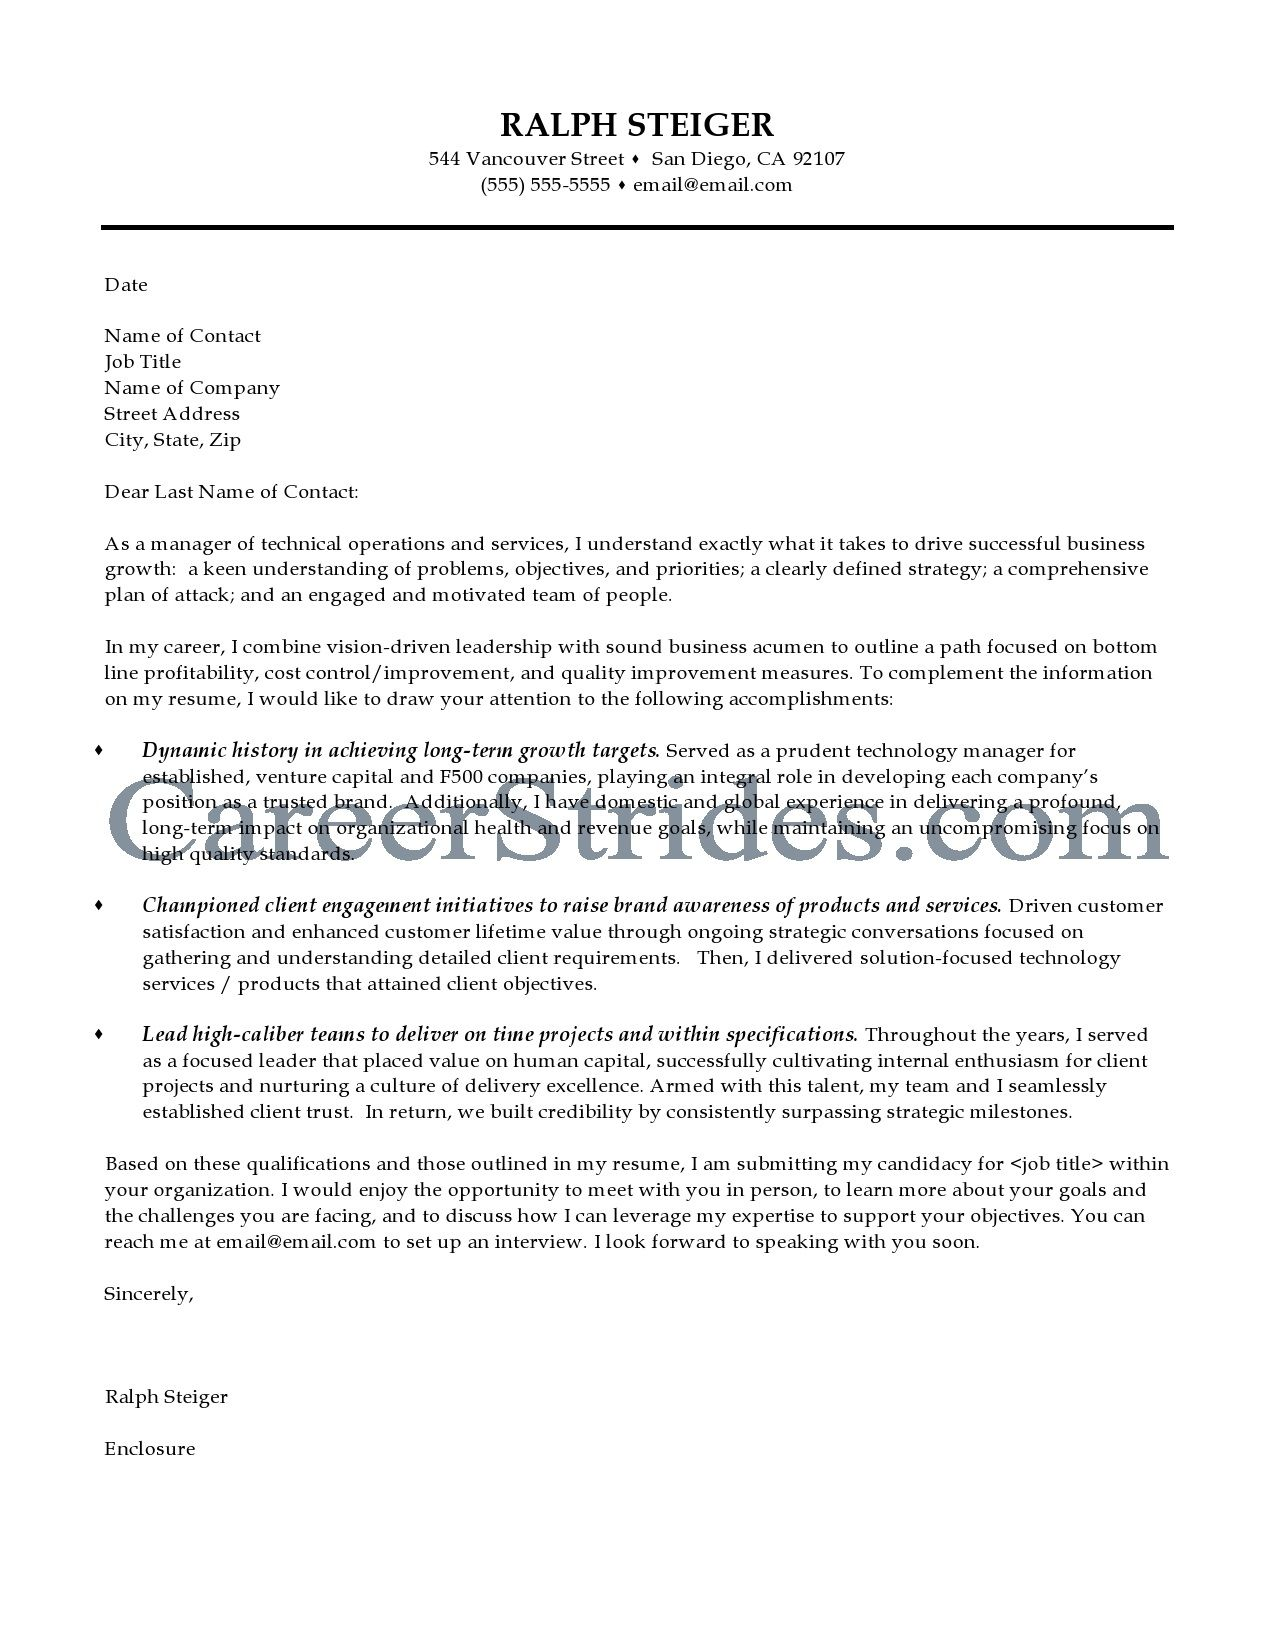 Cover Letters Marketing Manager Letter Sample Great Examples For